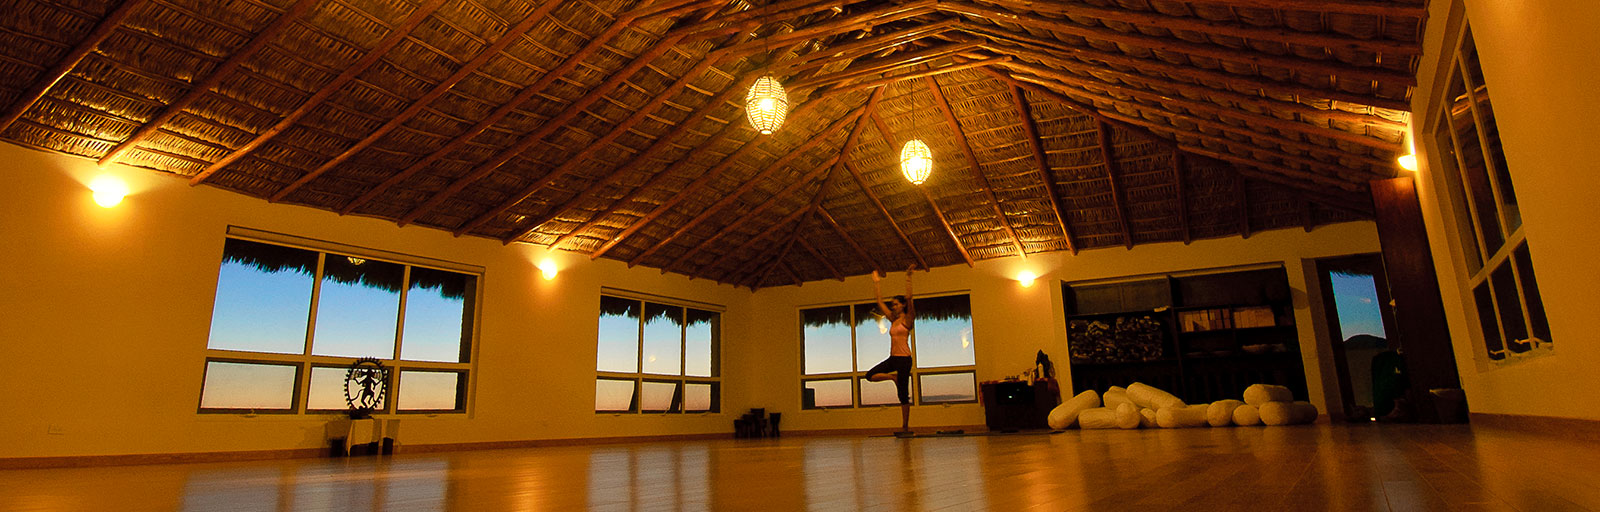 Mexico Yoga Retreat Yoga Studio: Evening in the Yoga Studio